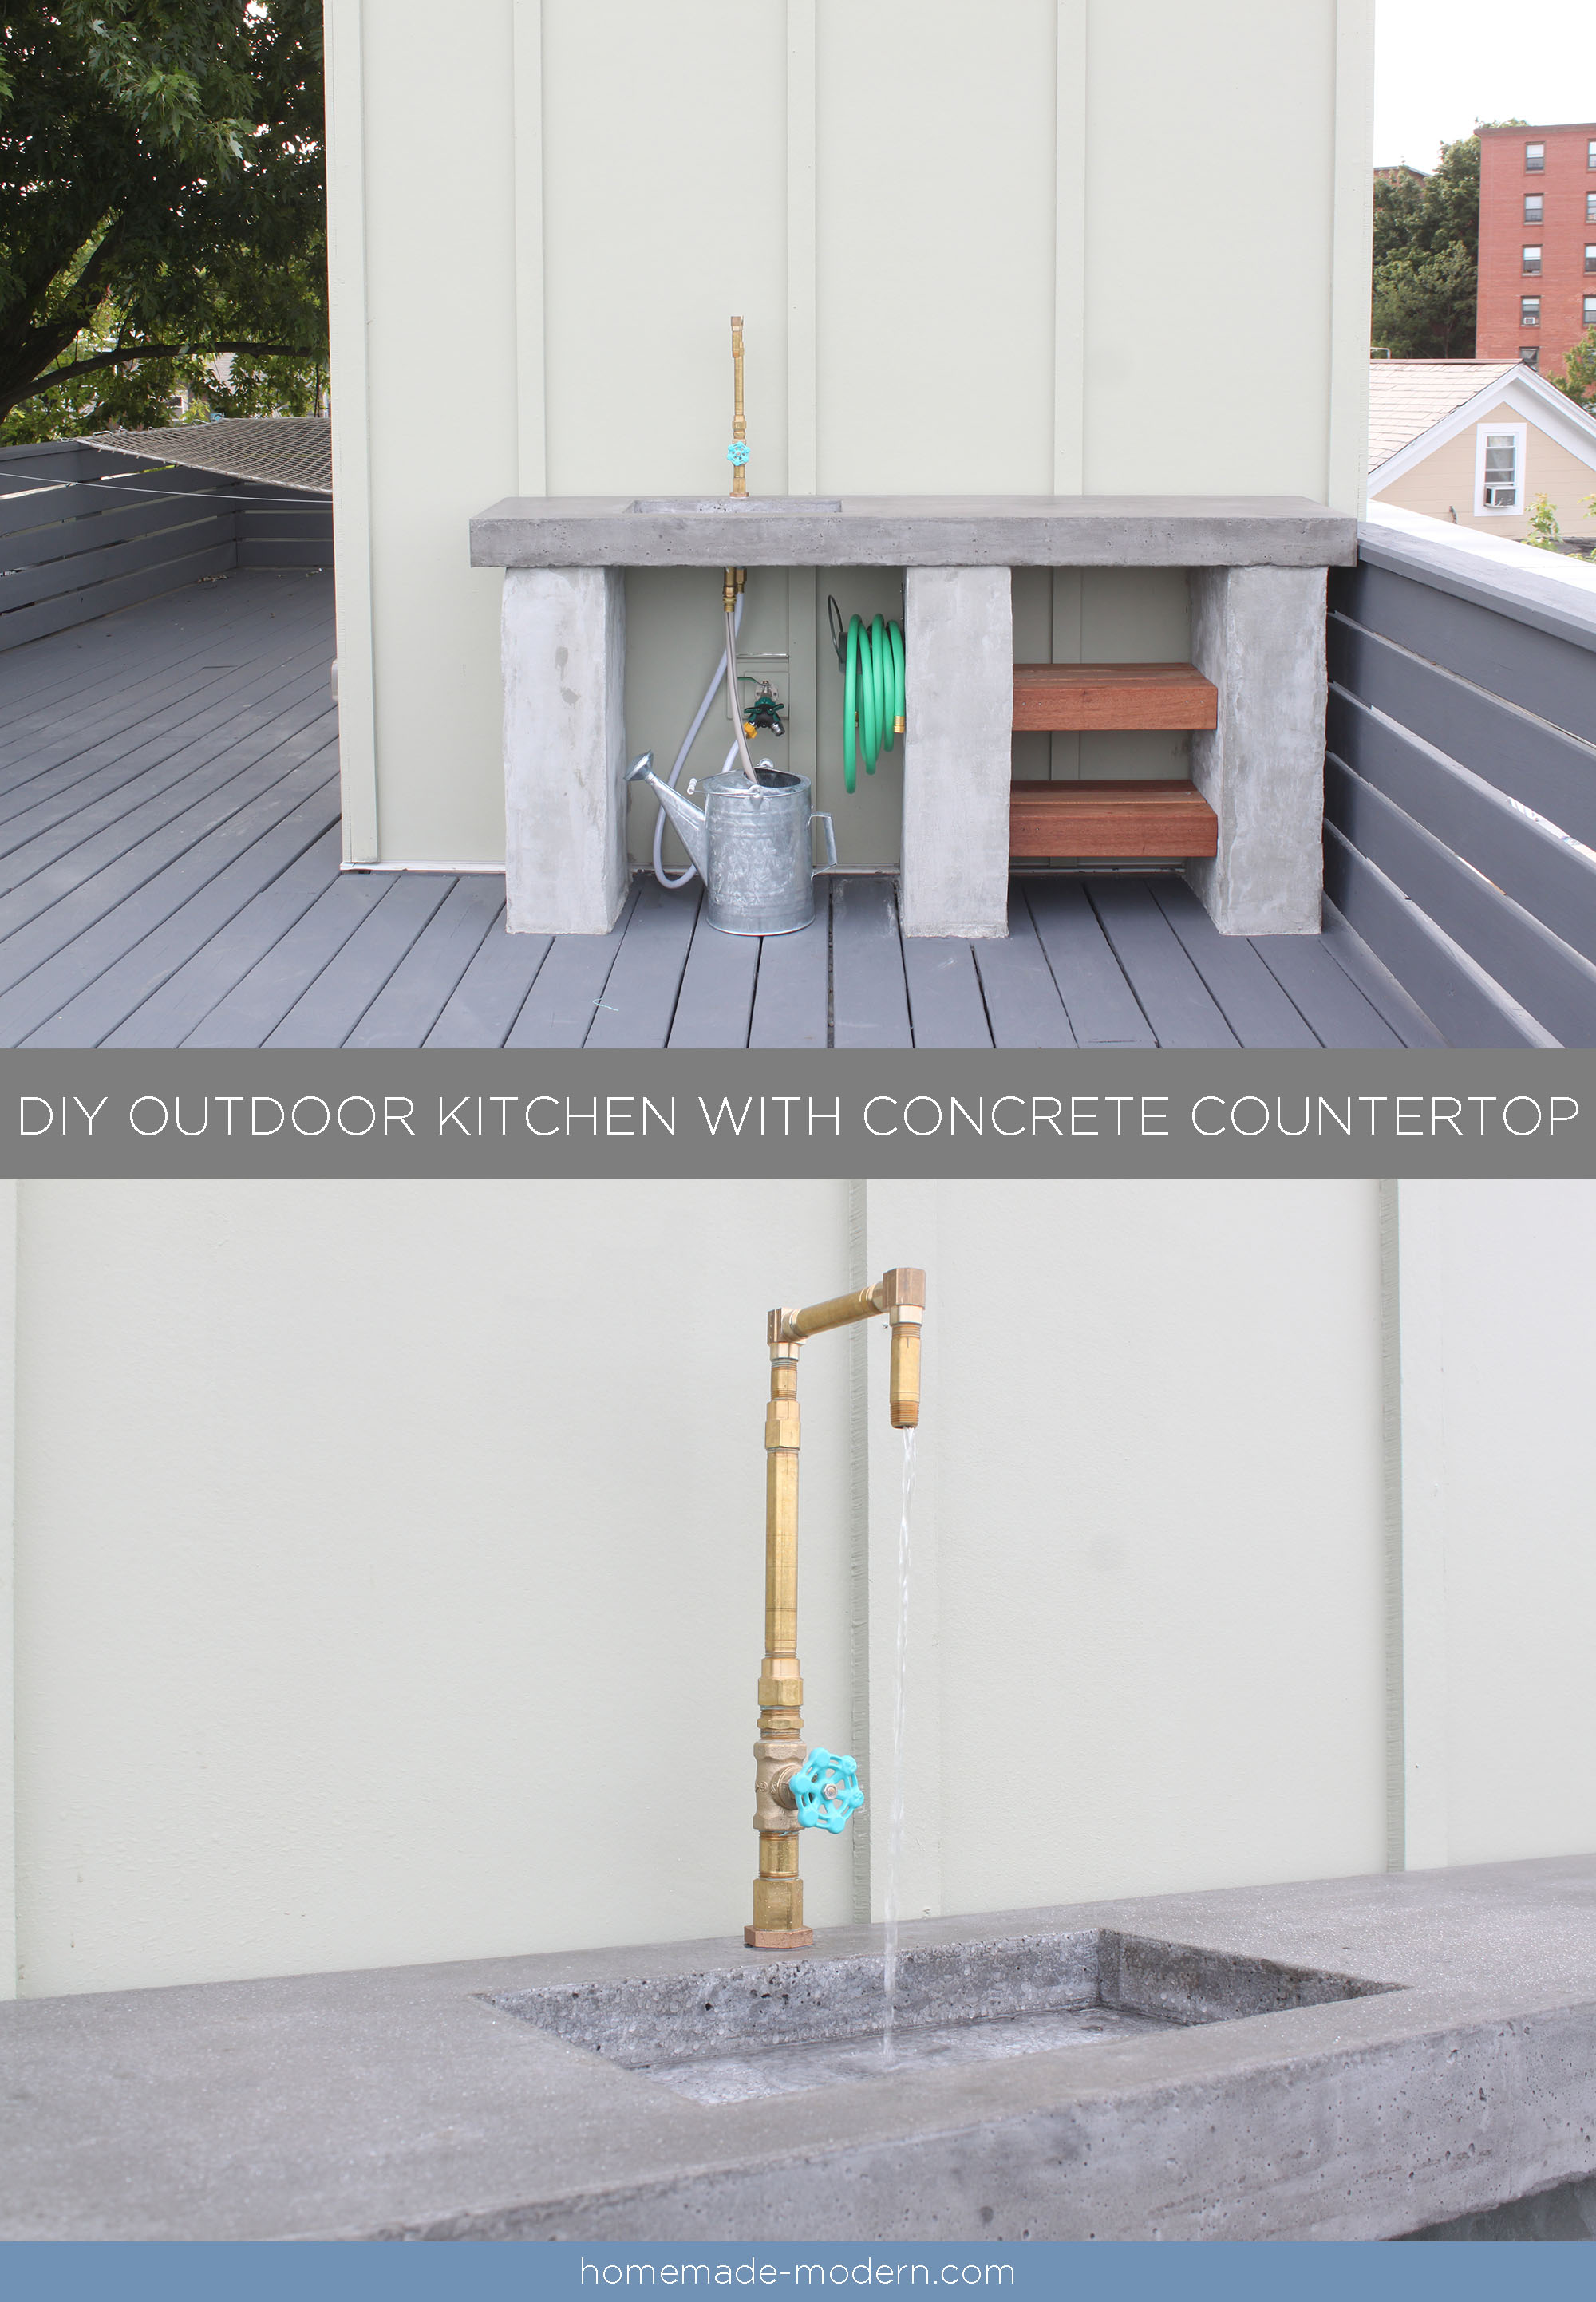 This DIY Outdoor Kitchen with Concrete Countertop is convenient for your deck, patio or outdoor garden. Full instructions can be found at HomeDepot.com